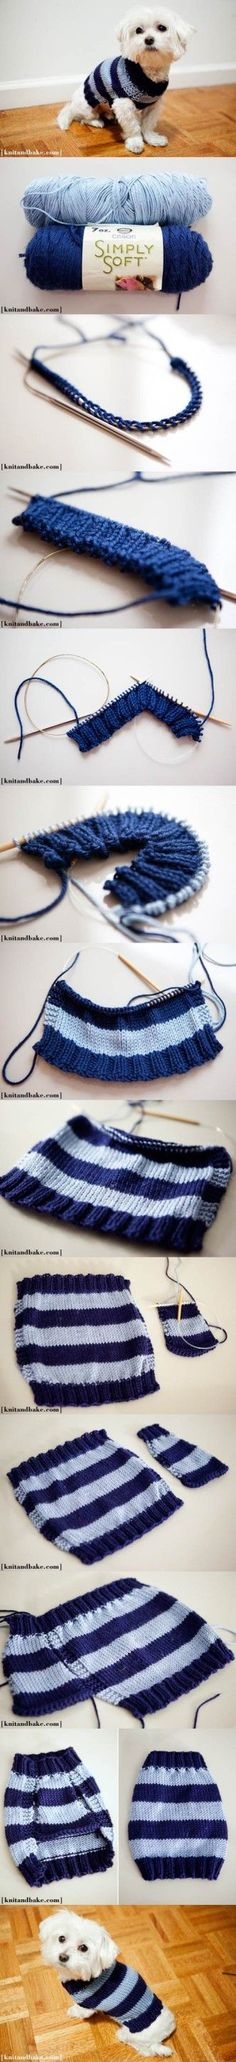 DIY Easy Knitted Dog Sweater 2                                                                                                                                                                                 More #dogsdiyclothes